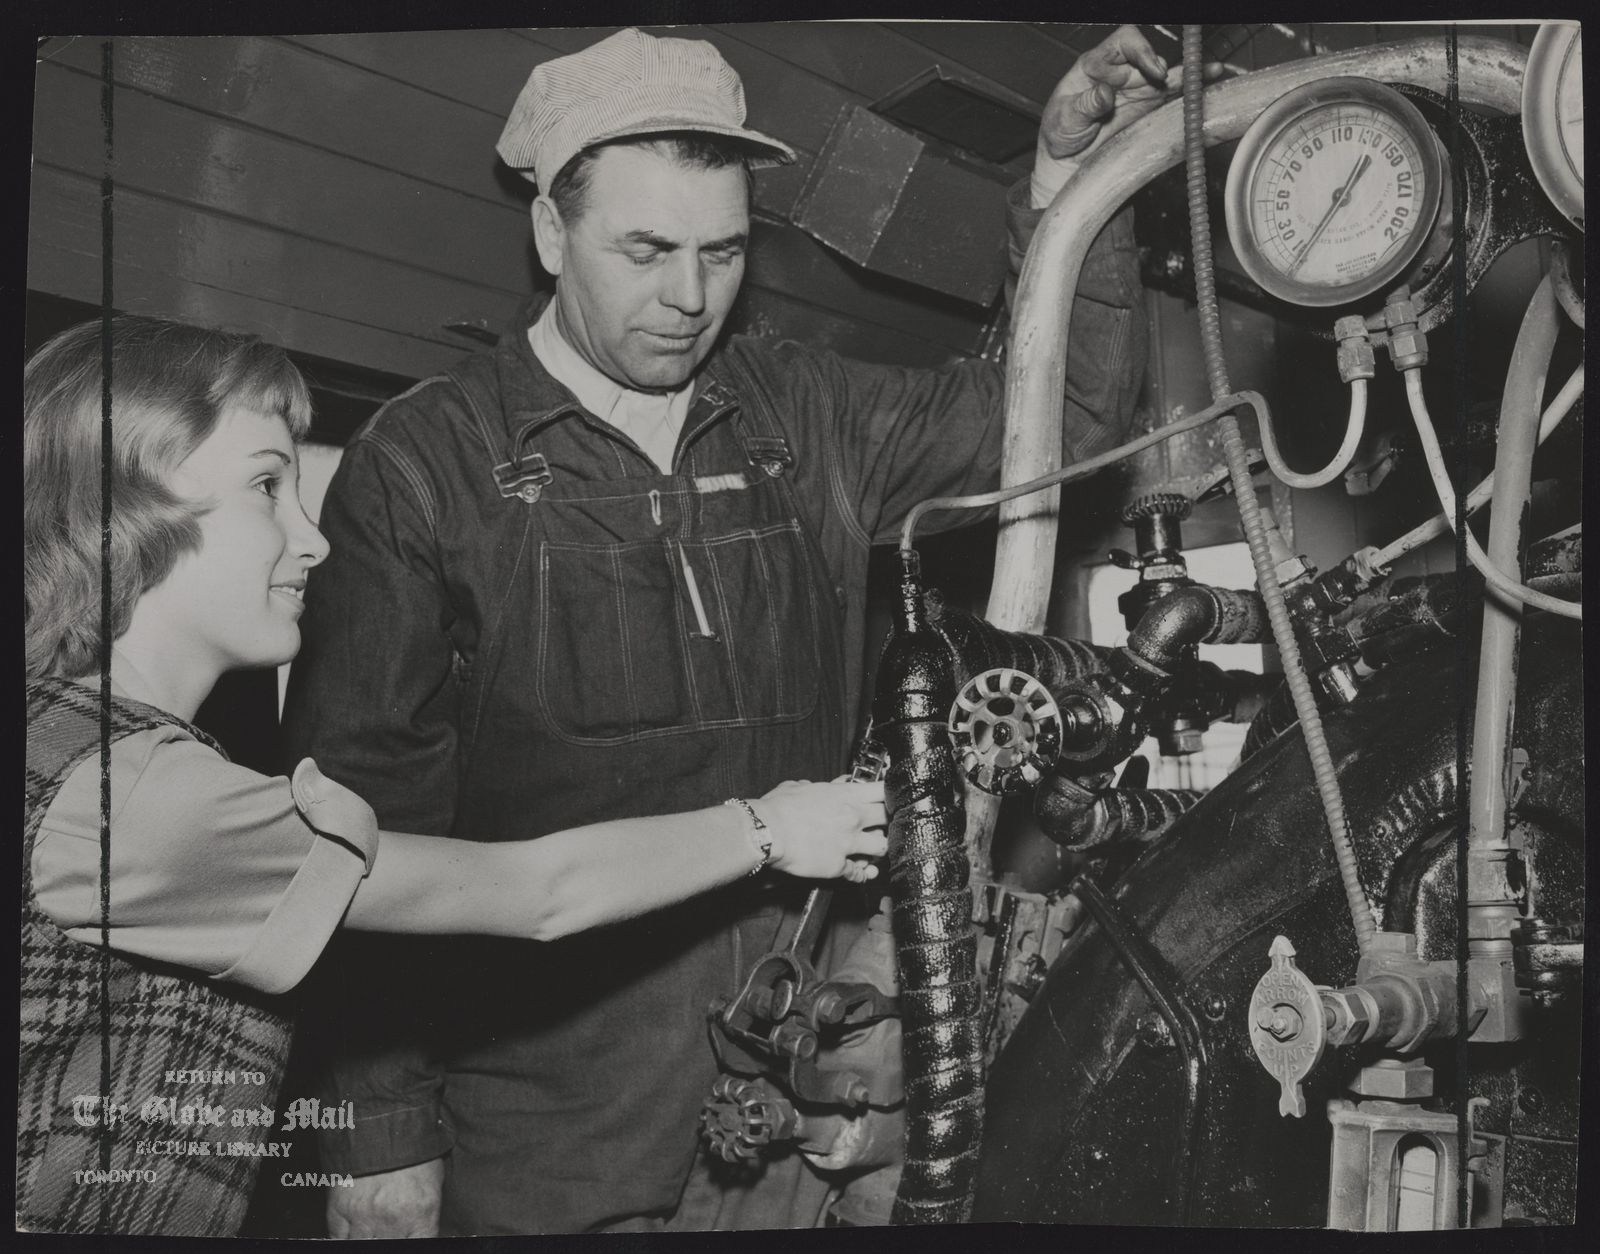 CPR Rolling Stock In the cab, foreman Peter Wilson shows July Miller how the water injector works on Engine 136. [NB: Canadian Pacific 136 is a class A-2-m 4-4-0 steam locomotive built in 1883 by the Rogers Locomotive Works for the Canadian Pacific Railway as No. 140. The locomotive was used for both passenger and freight service for the Canadian Pacific railroad. In 1912 she was renumbered to 115, and the following year she was given her final number and reclassified to A2m. No. 136 was retired from the Canadian Pacific roster in 1960. The engine now remains in operating condition at the South Simcoe Railway in Tottenham, Ontario.]